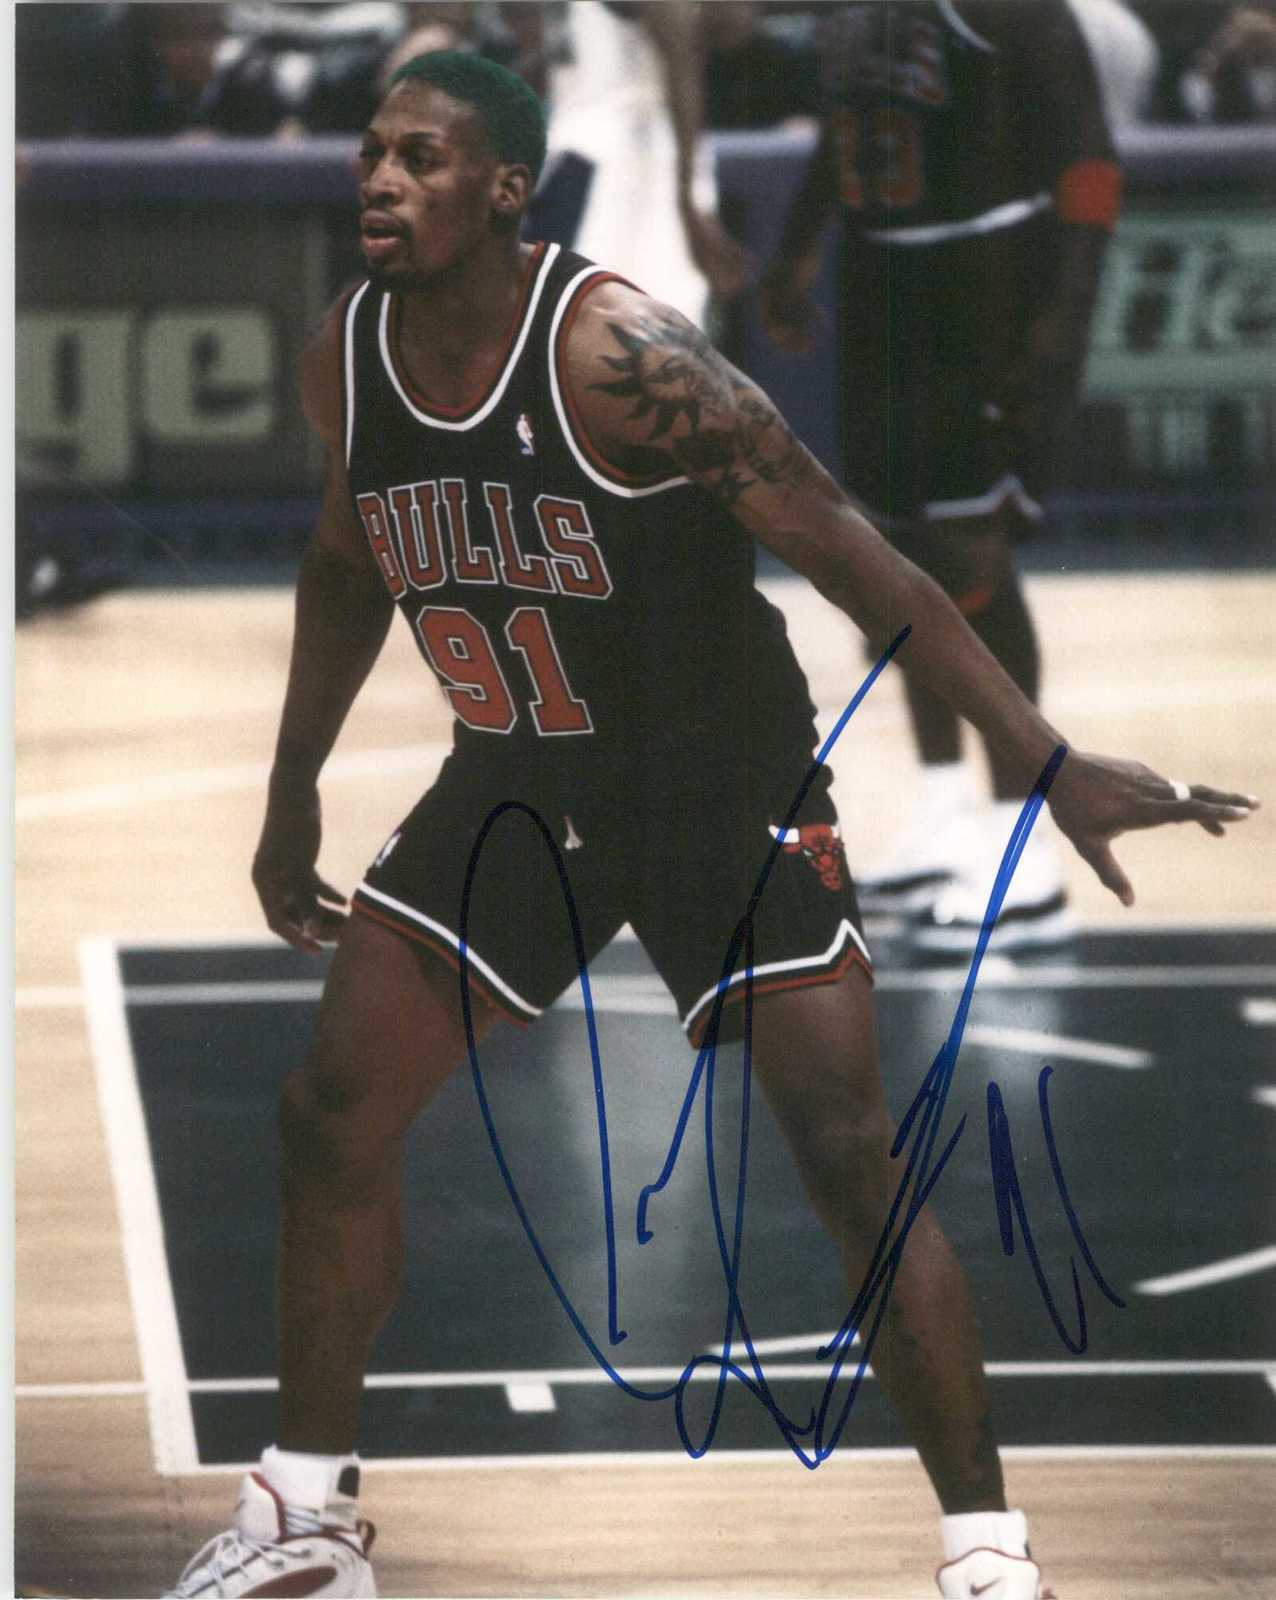 Primary image for Dennis Rodman Signed Autographed Glossy 8x10 Photo - Chicago Bulls